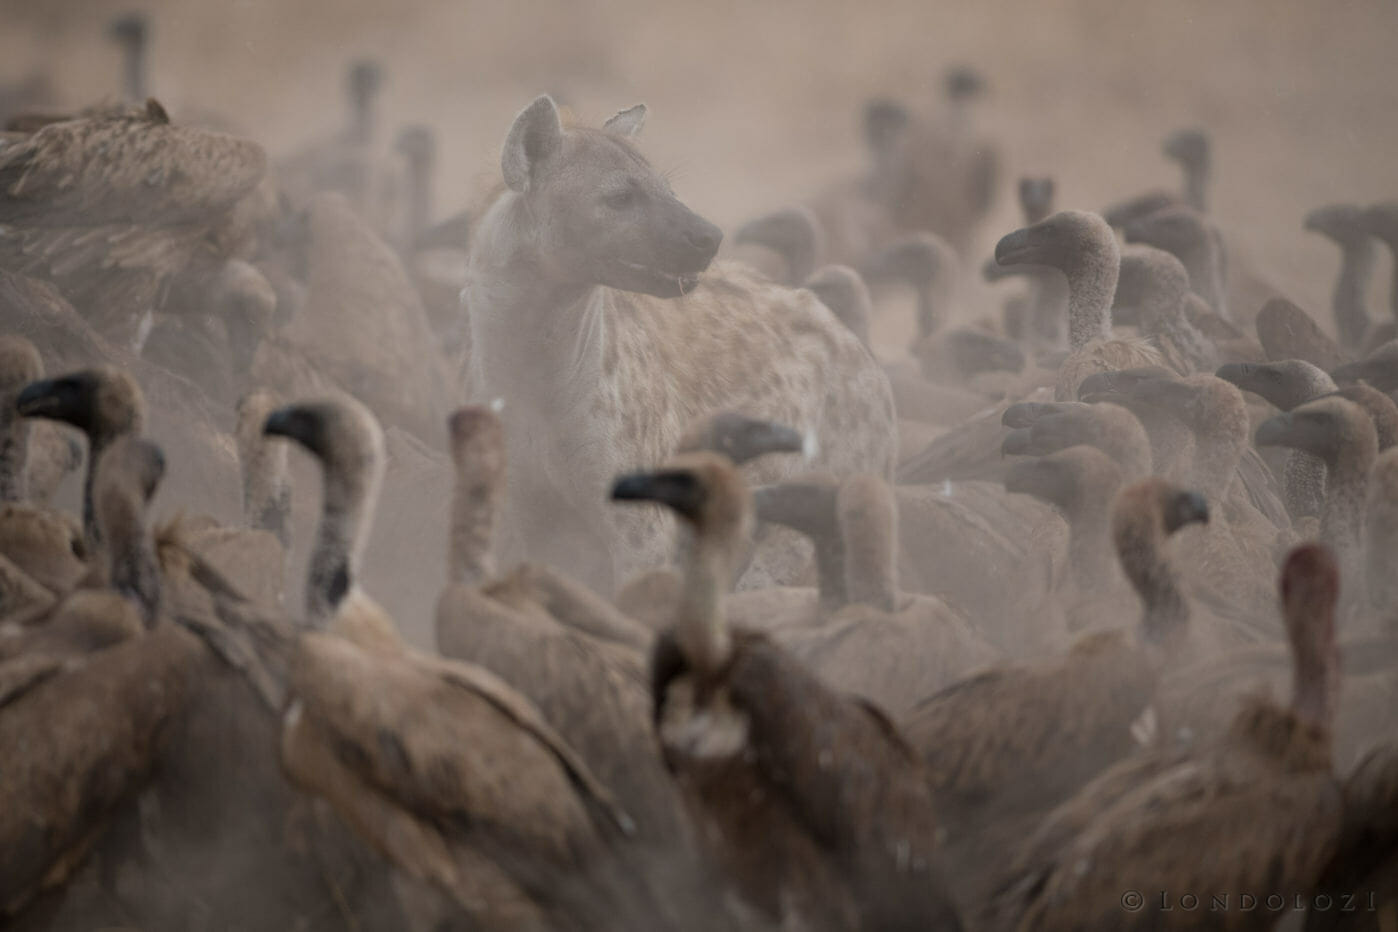 A hyena walks through vultures in dust at Londolozi